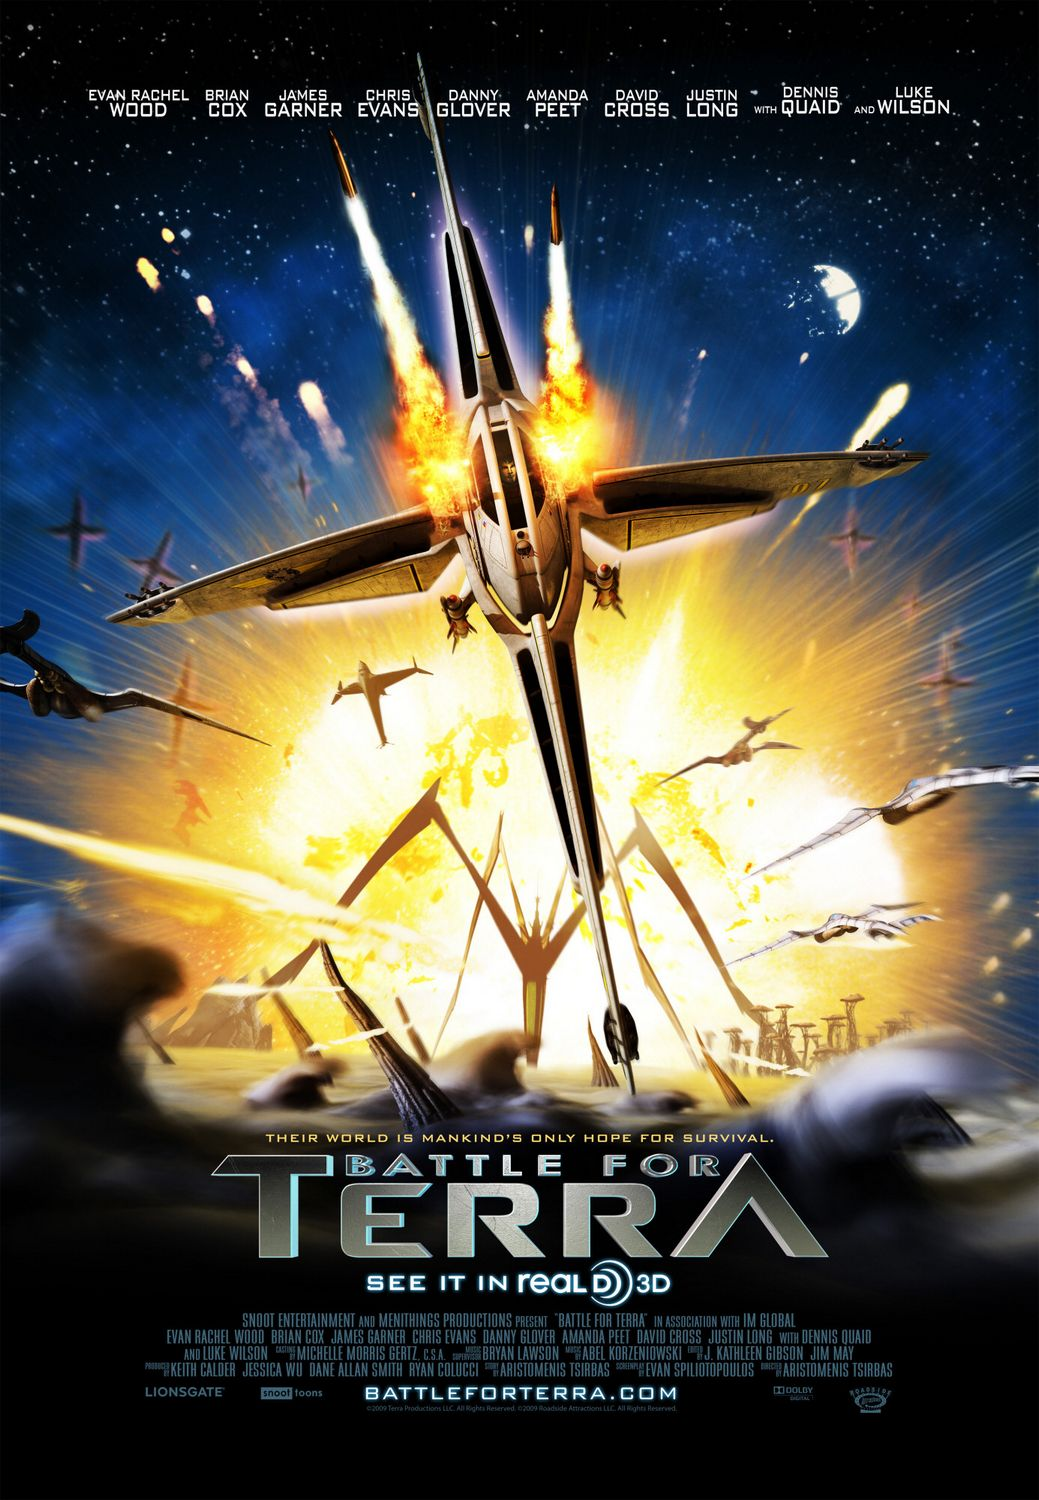 Battle for Terra (2007; animated)